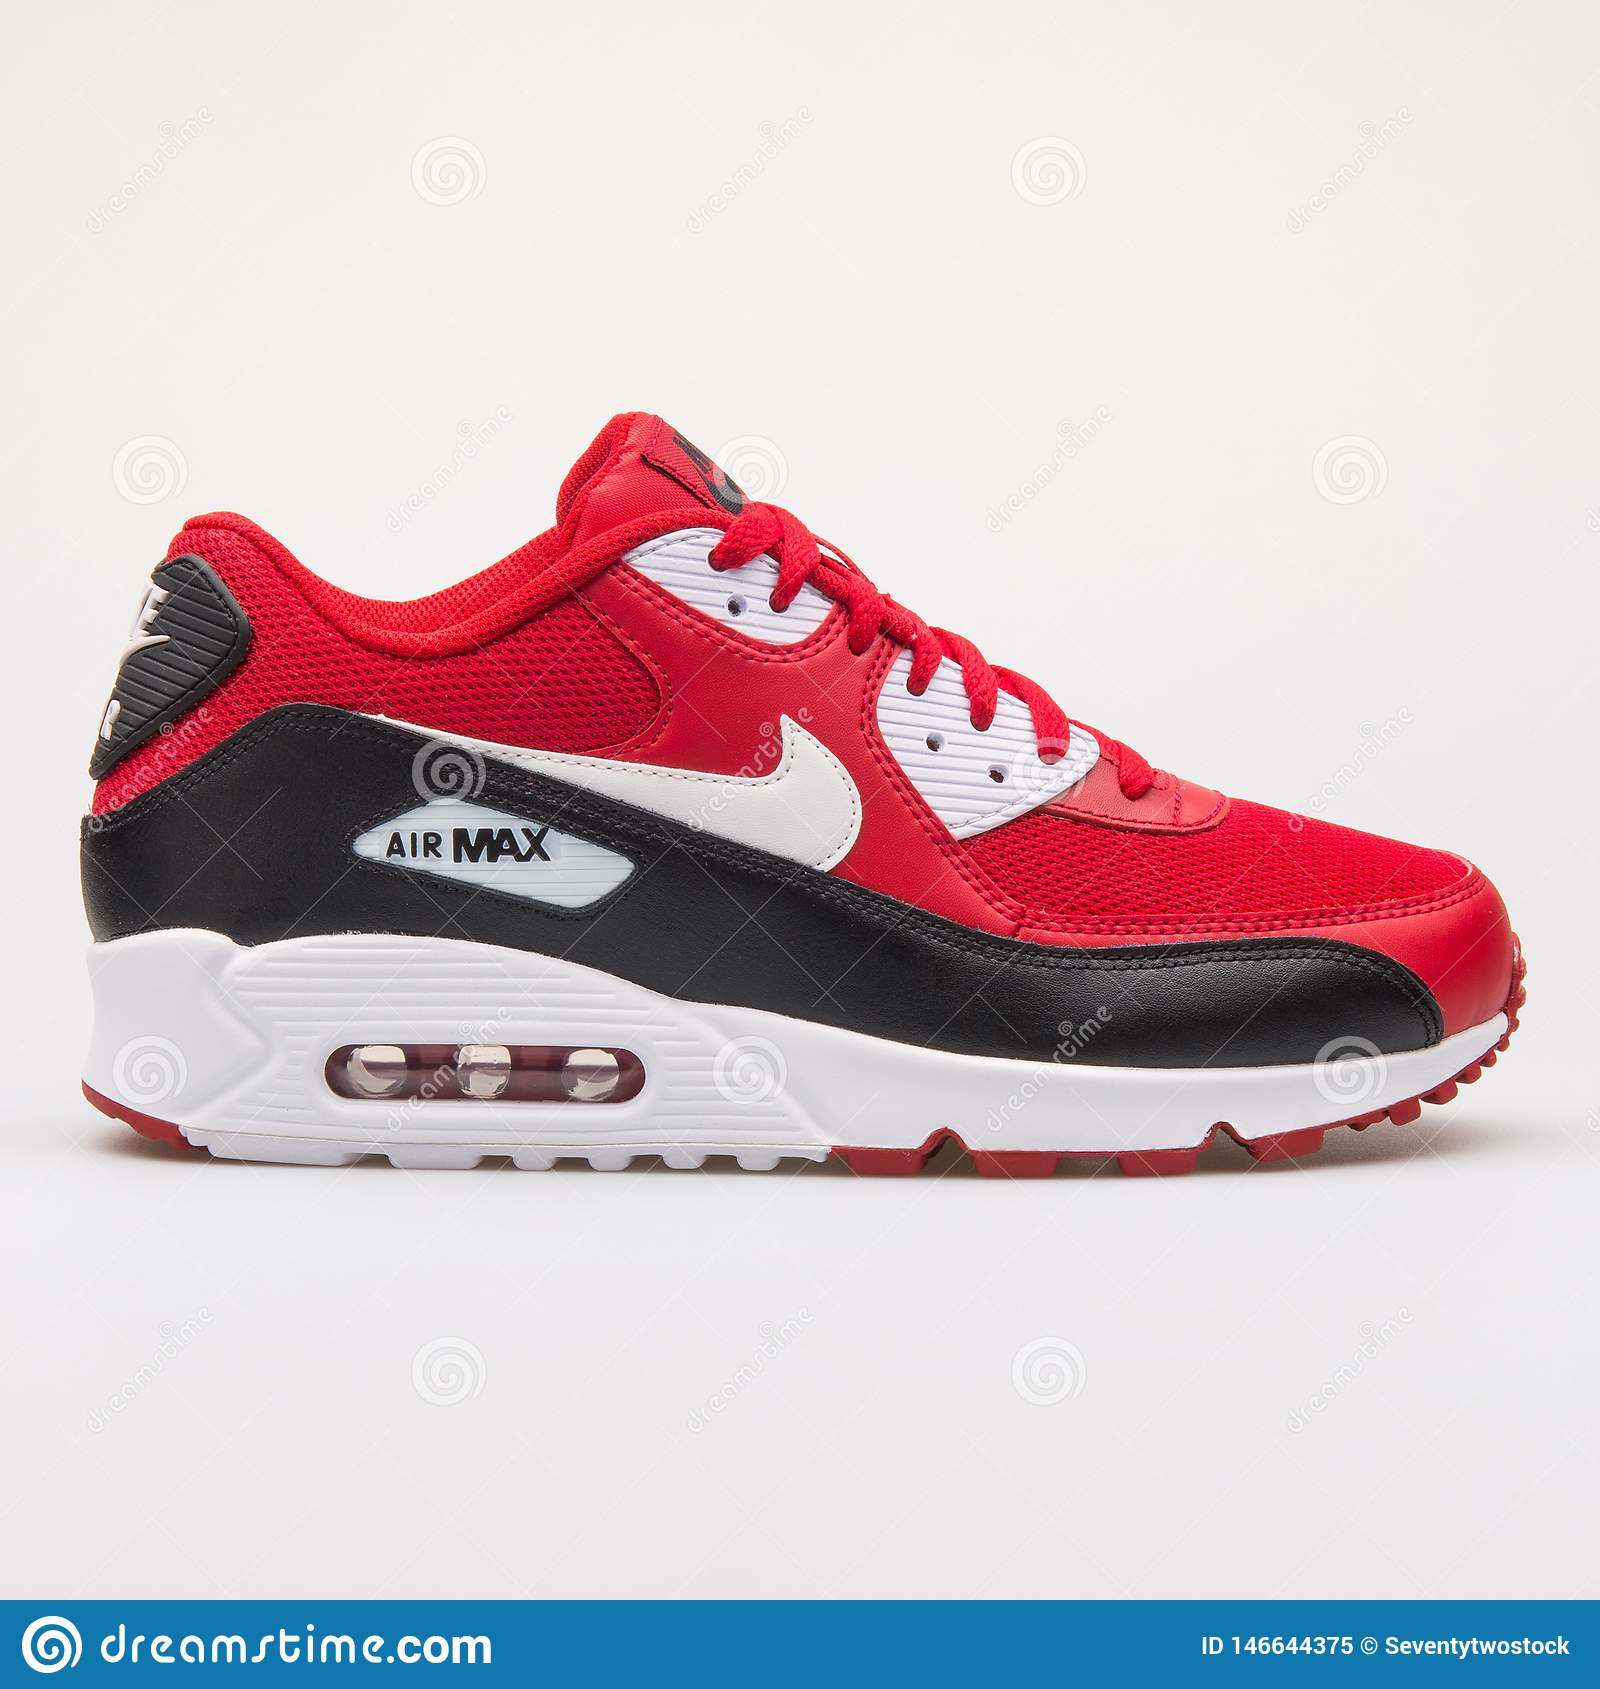 Nike Air Max 90 Essential Red, Black And White Sneaker